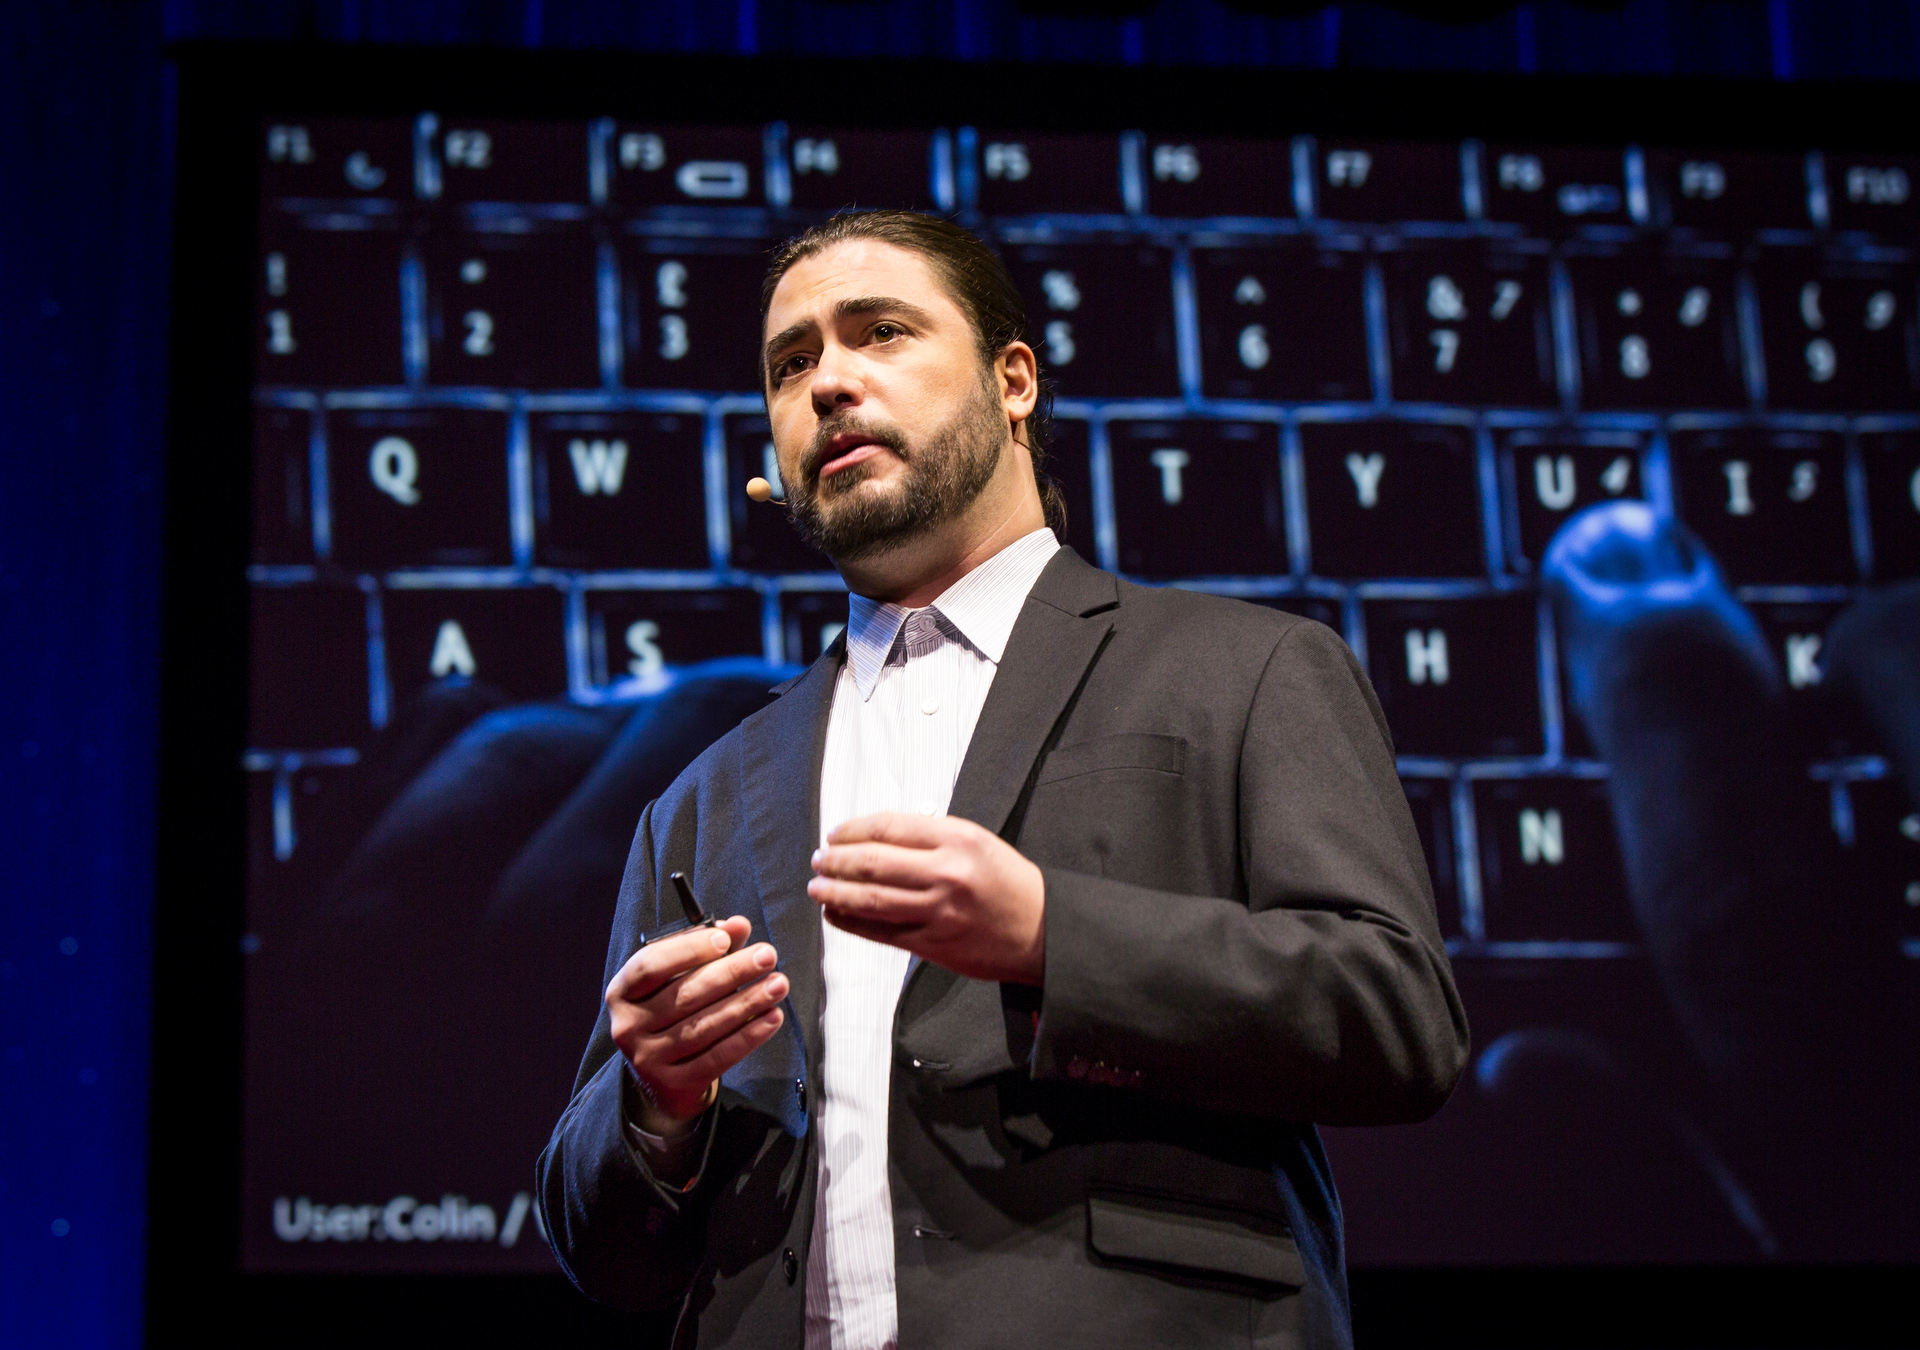 Christopher Soghoian on ways government surveillance makes us all less secure. Fellows session 2, TED2015 - Truth and Dare, March 16-20, 2015, Kay Meek Center, West Vancouver, Canada. Photo: Ryan Lash/TED